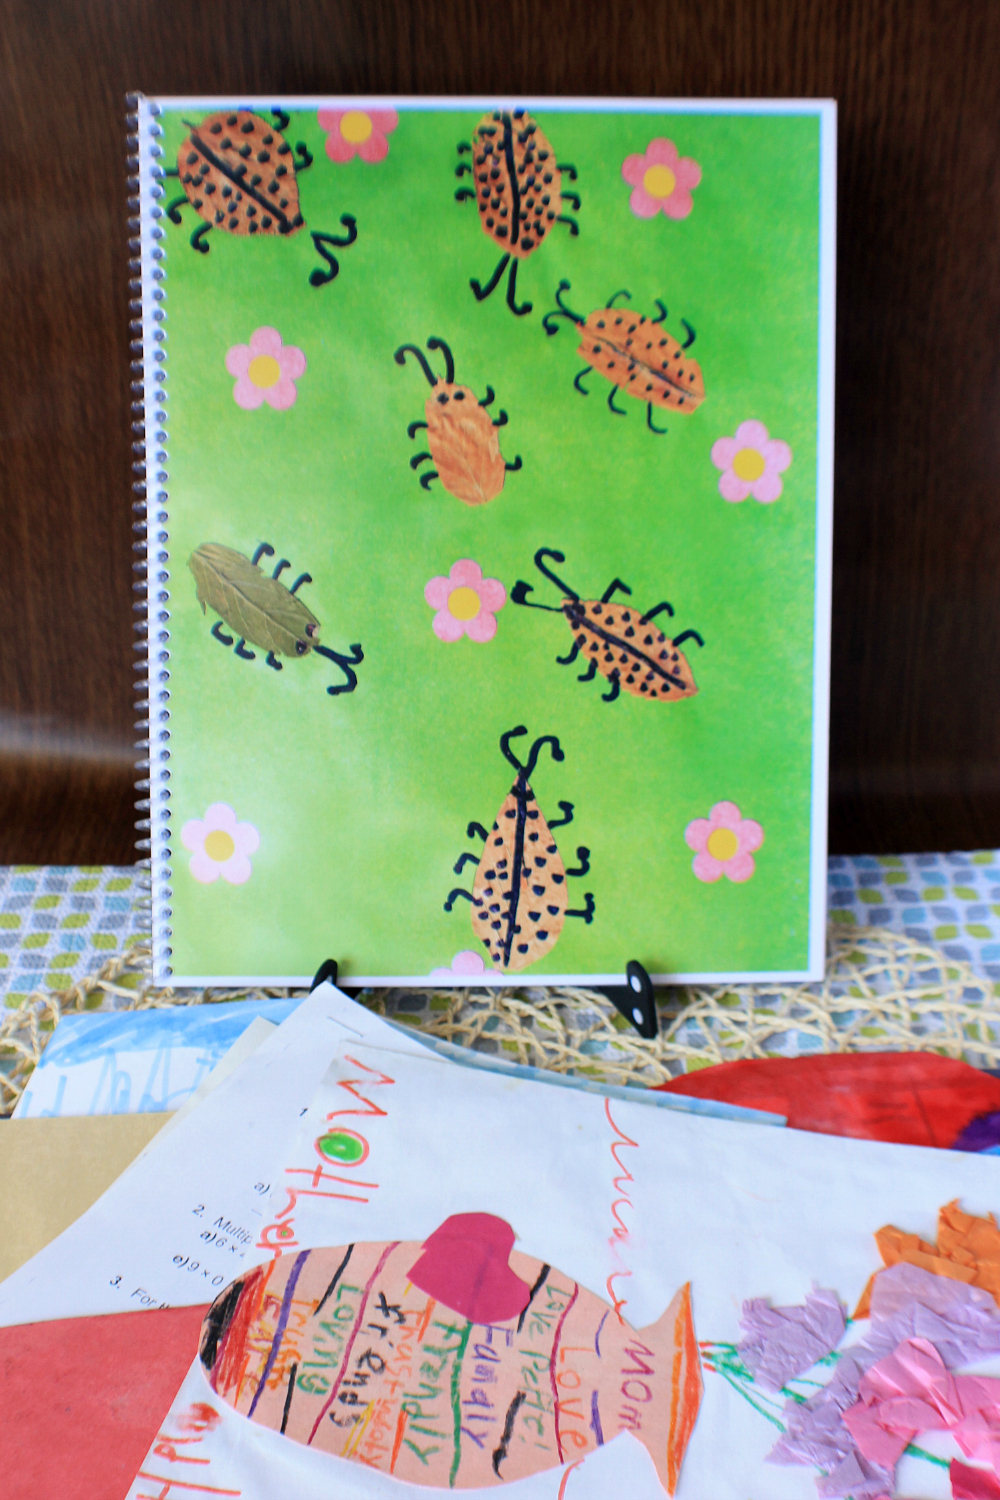 Children's Art & School Work Photo Book Mom Hack